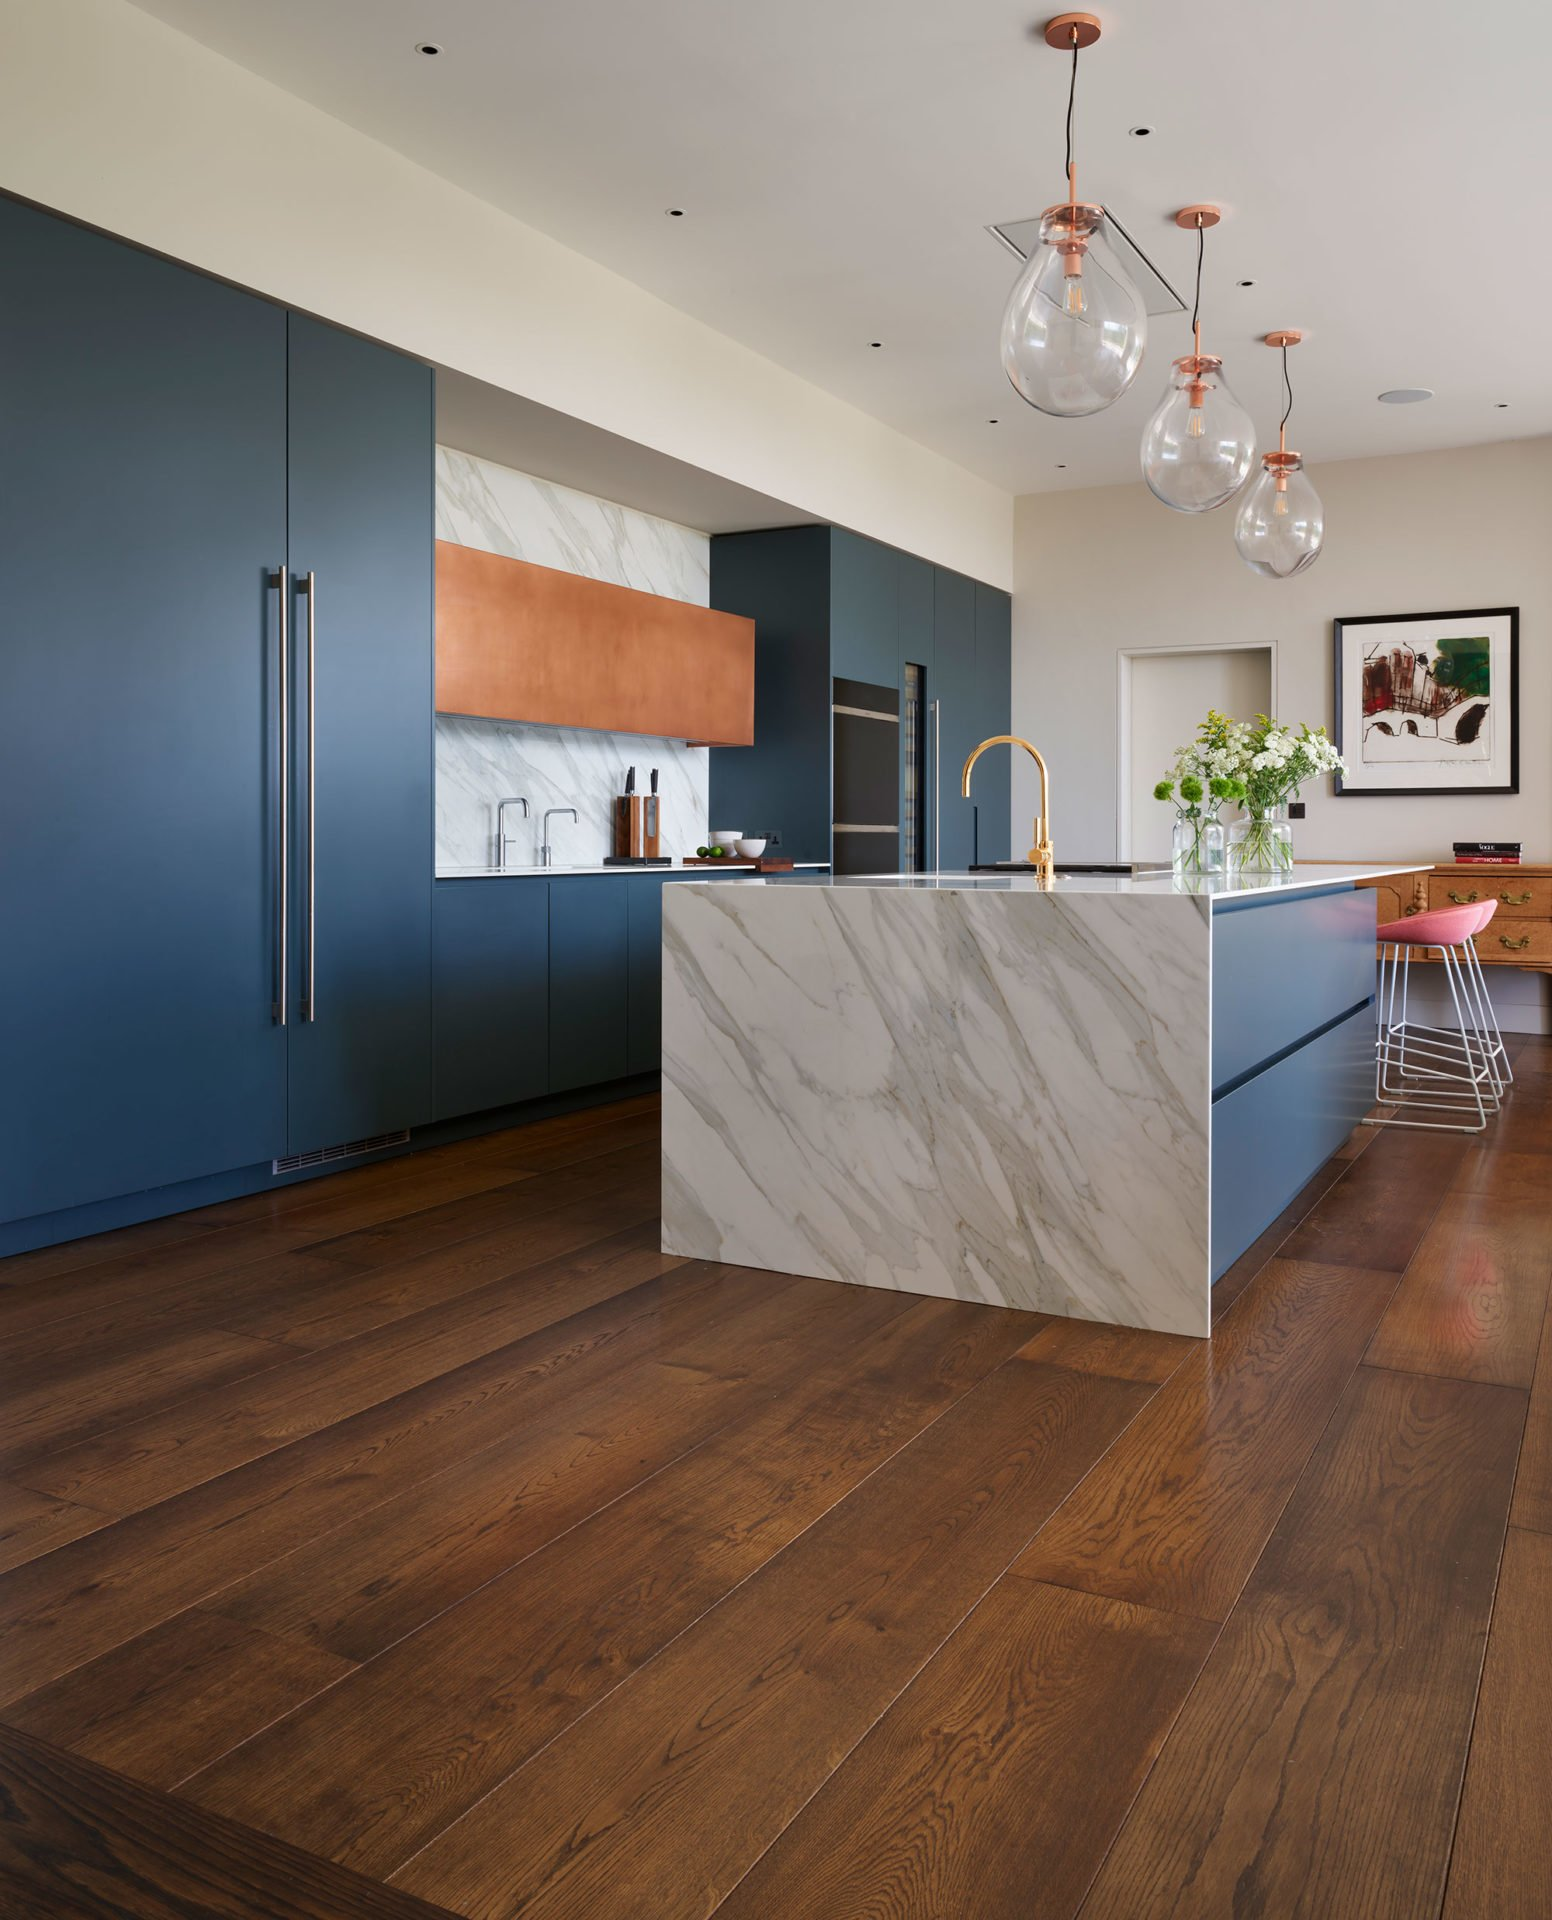 open plan kitchen showing floor planks in a mid-dark finish colour.